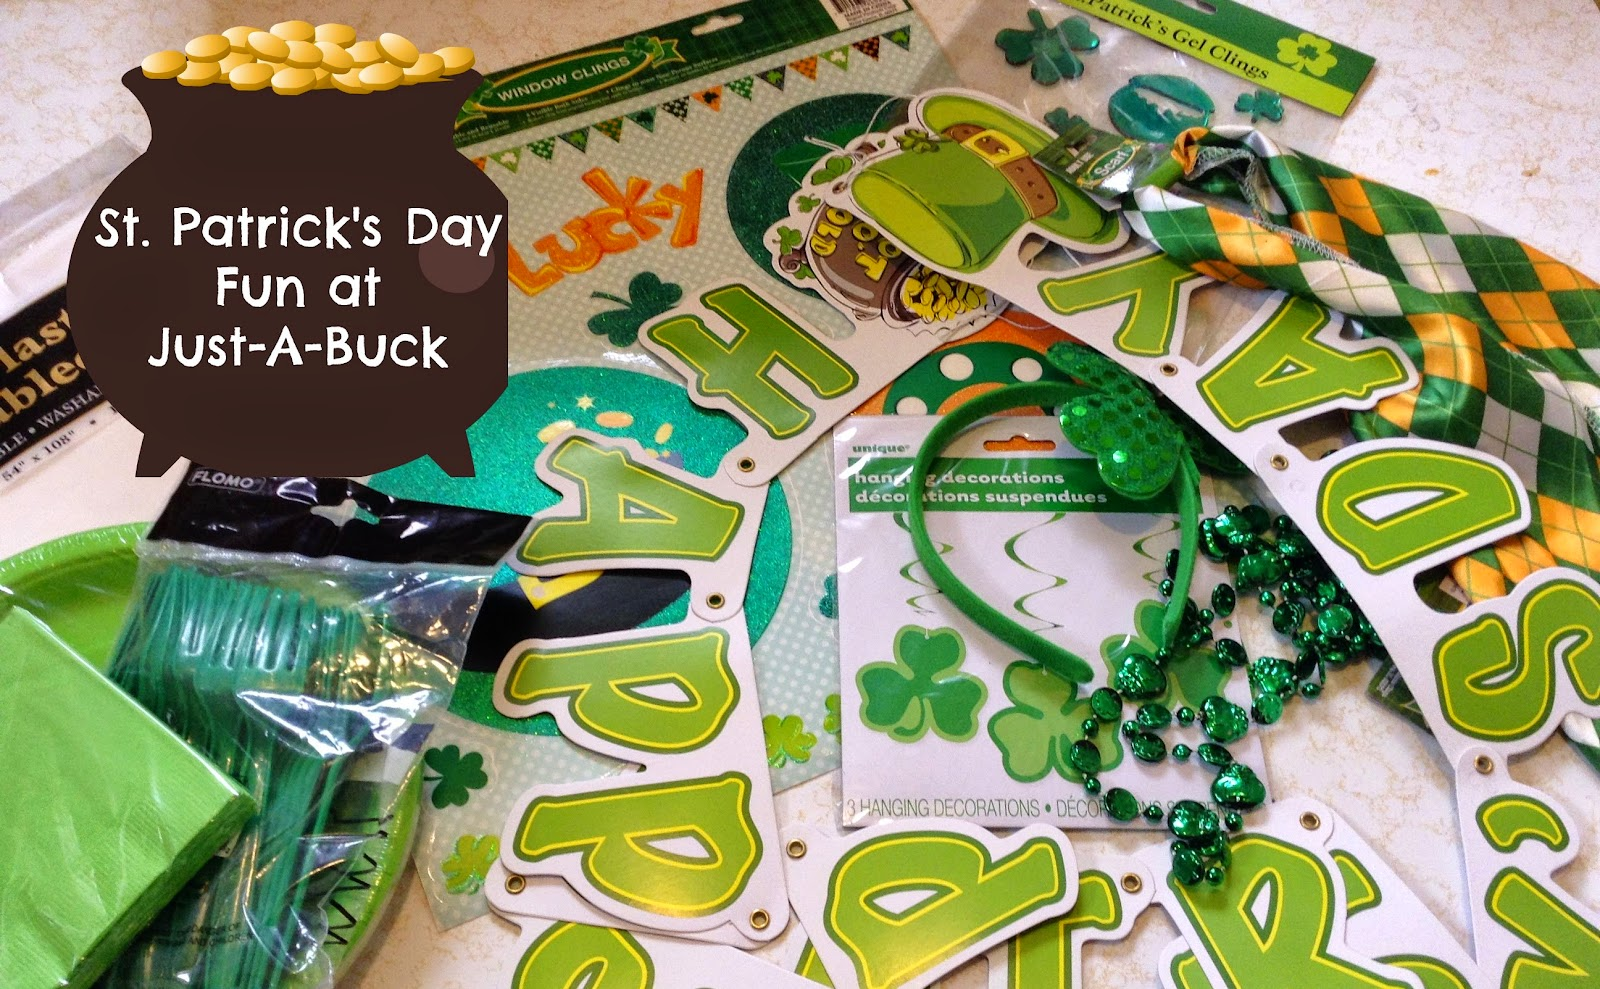 Just-A-Buck Northeast Ohio -  St. Patrick's Day Fun